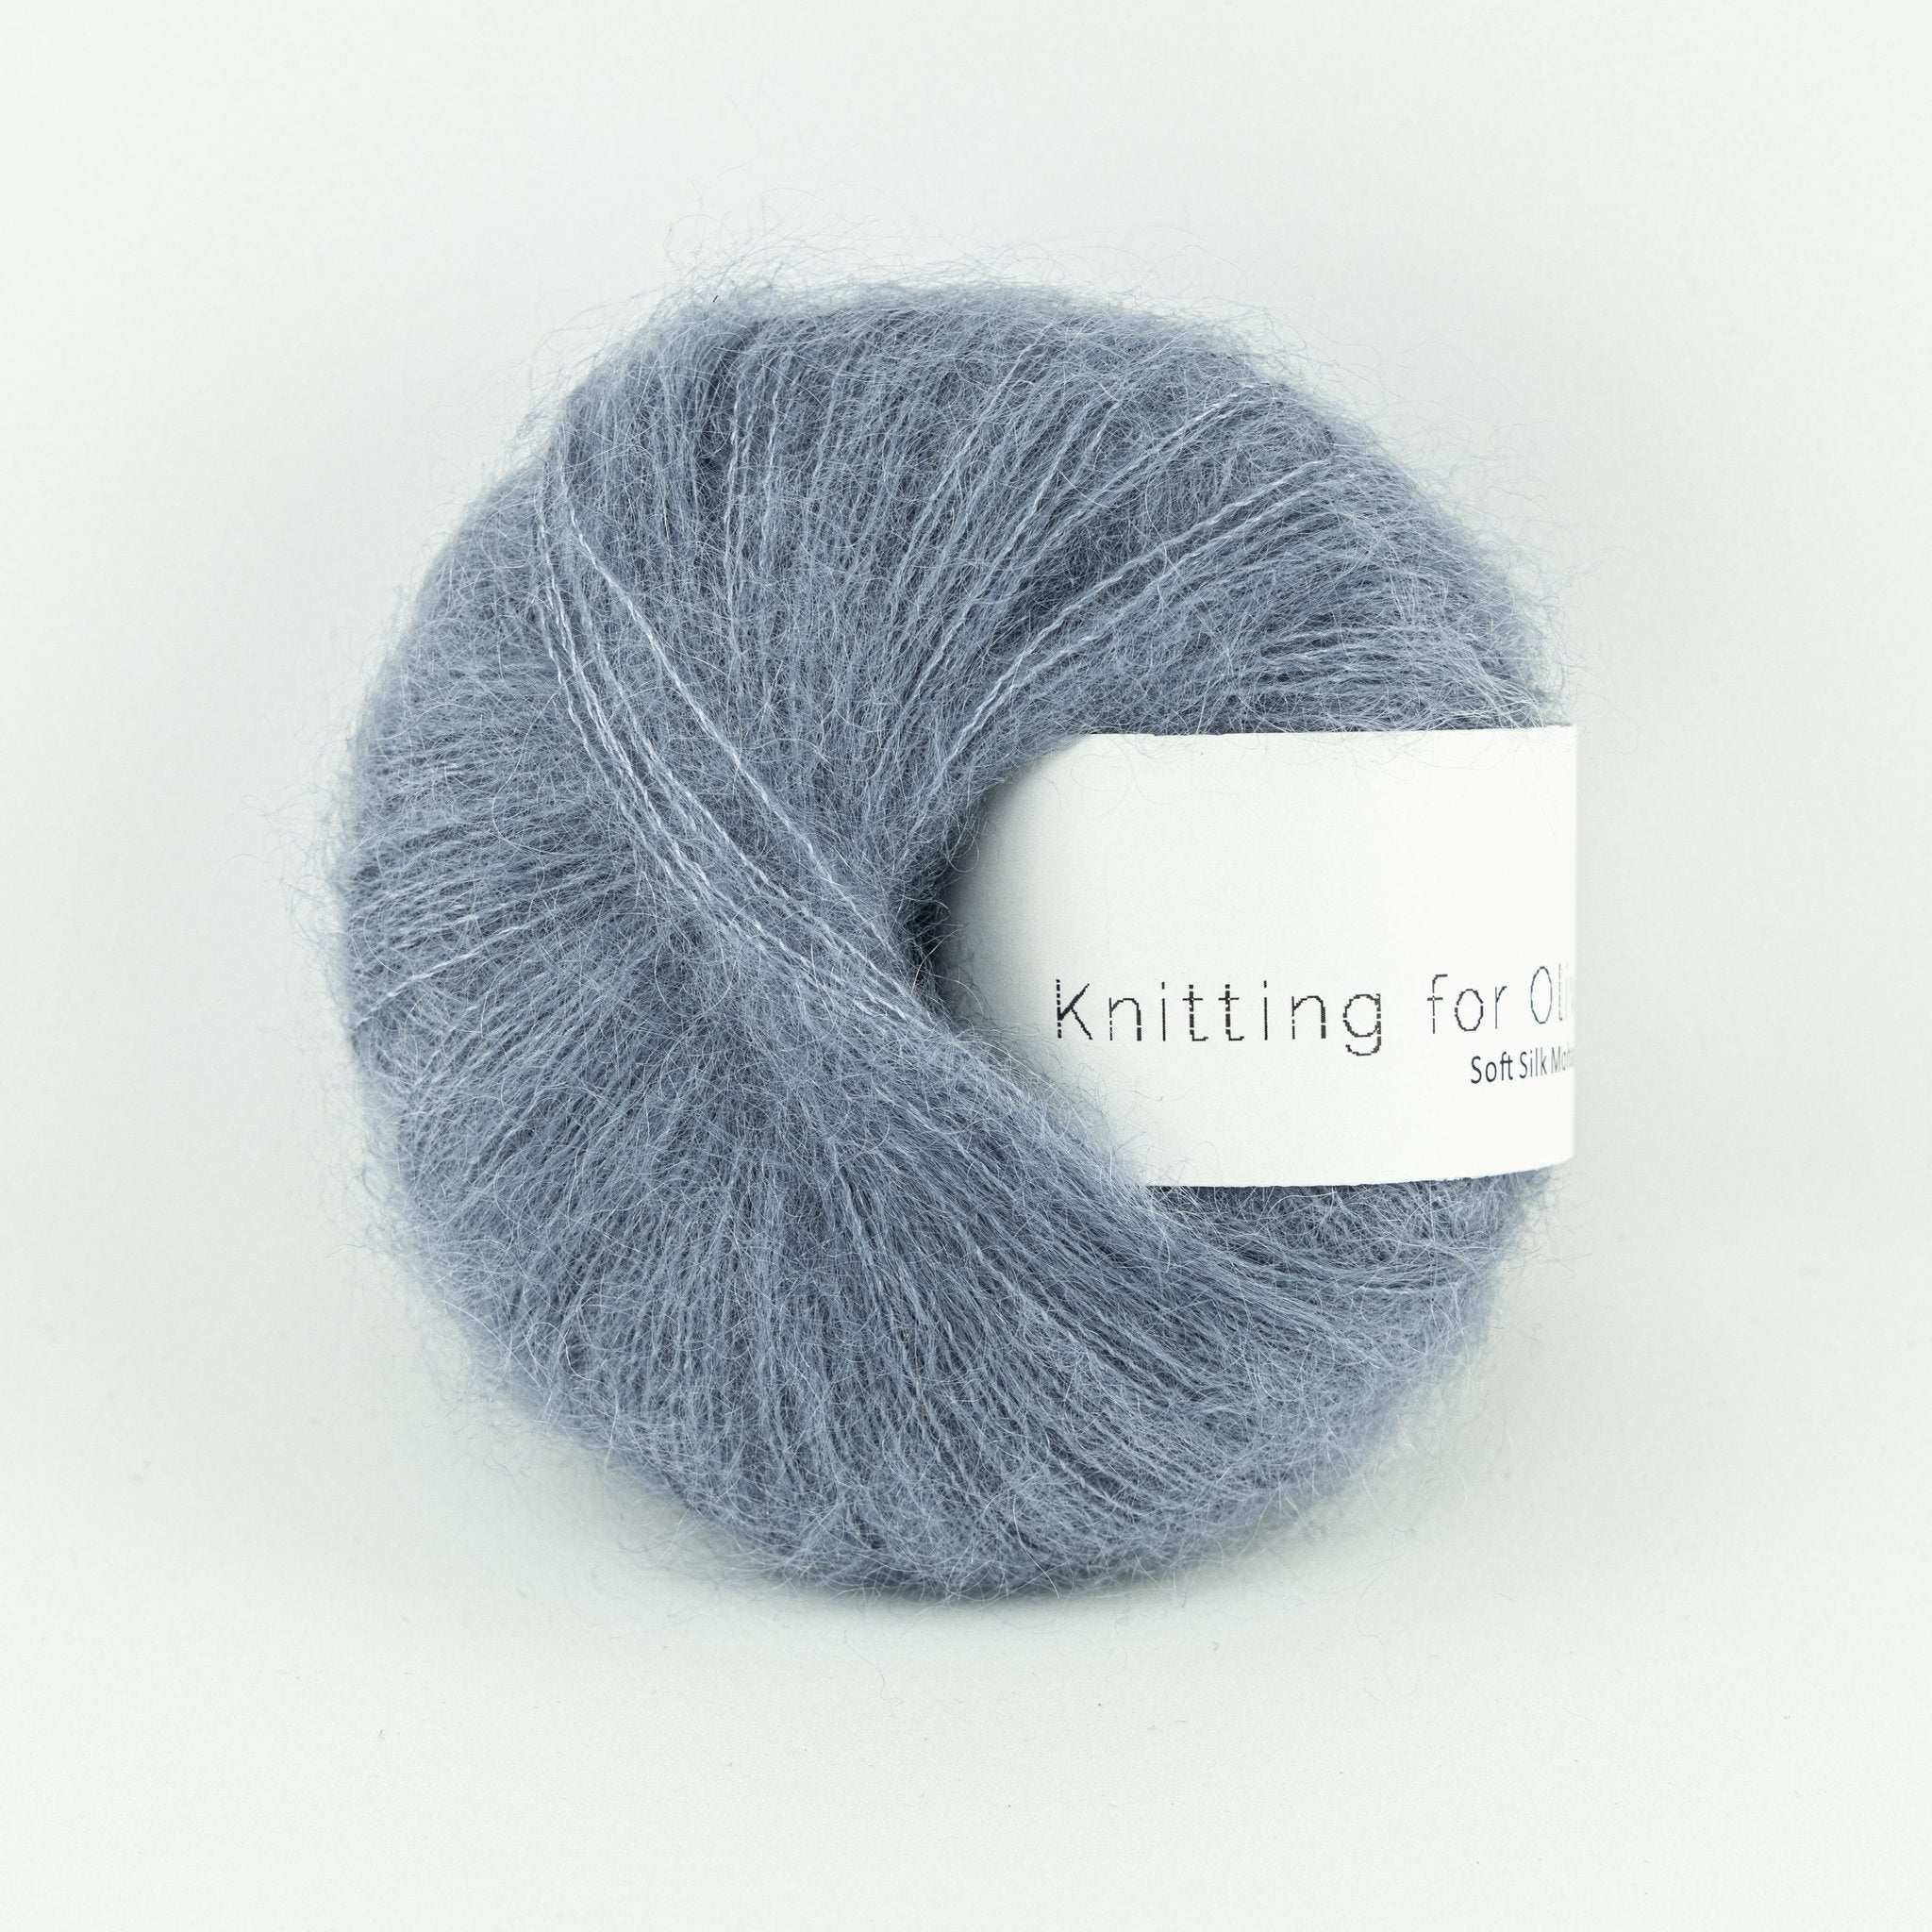 Knitting for Olive Soft Silk Mohair Støvet Dueblå